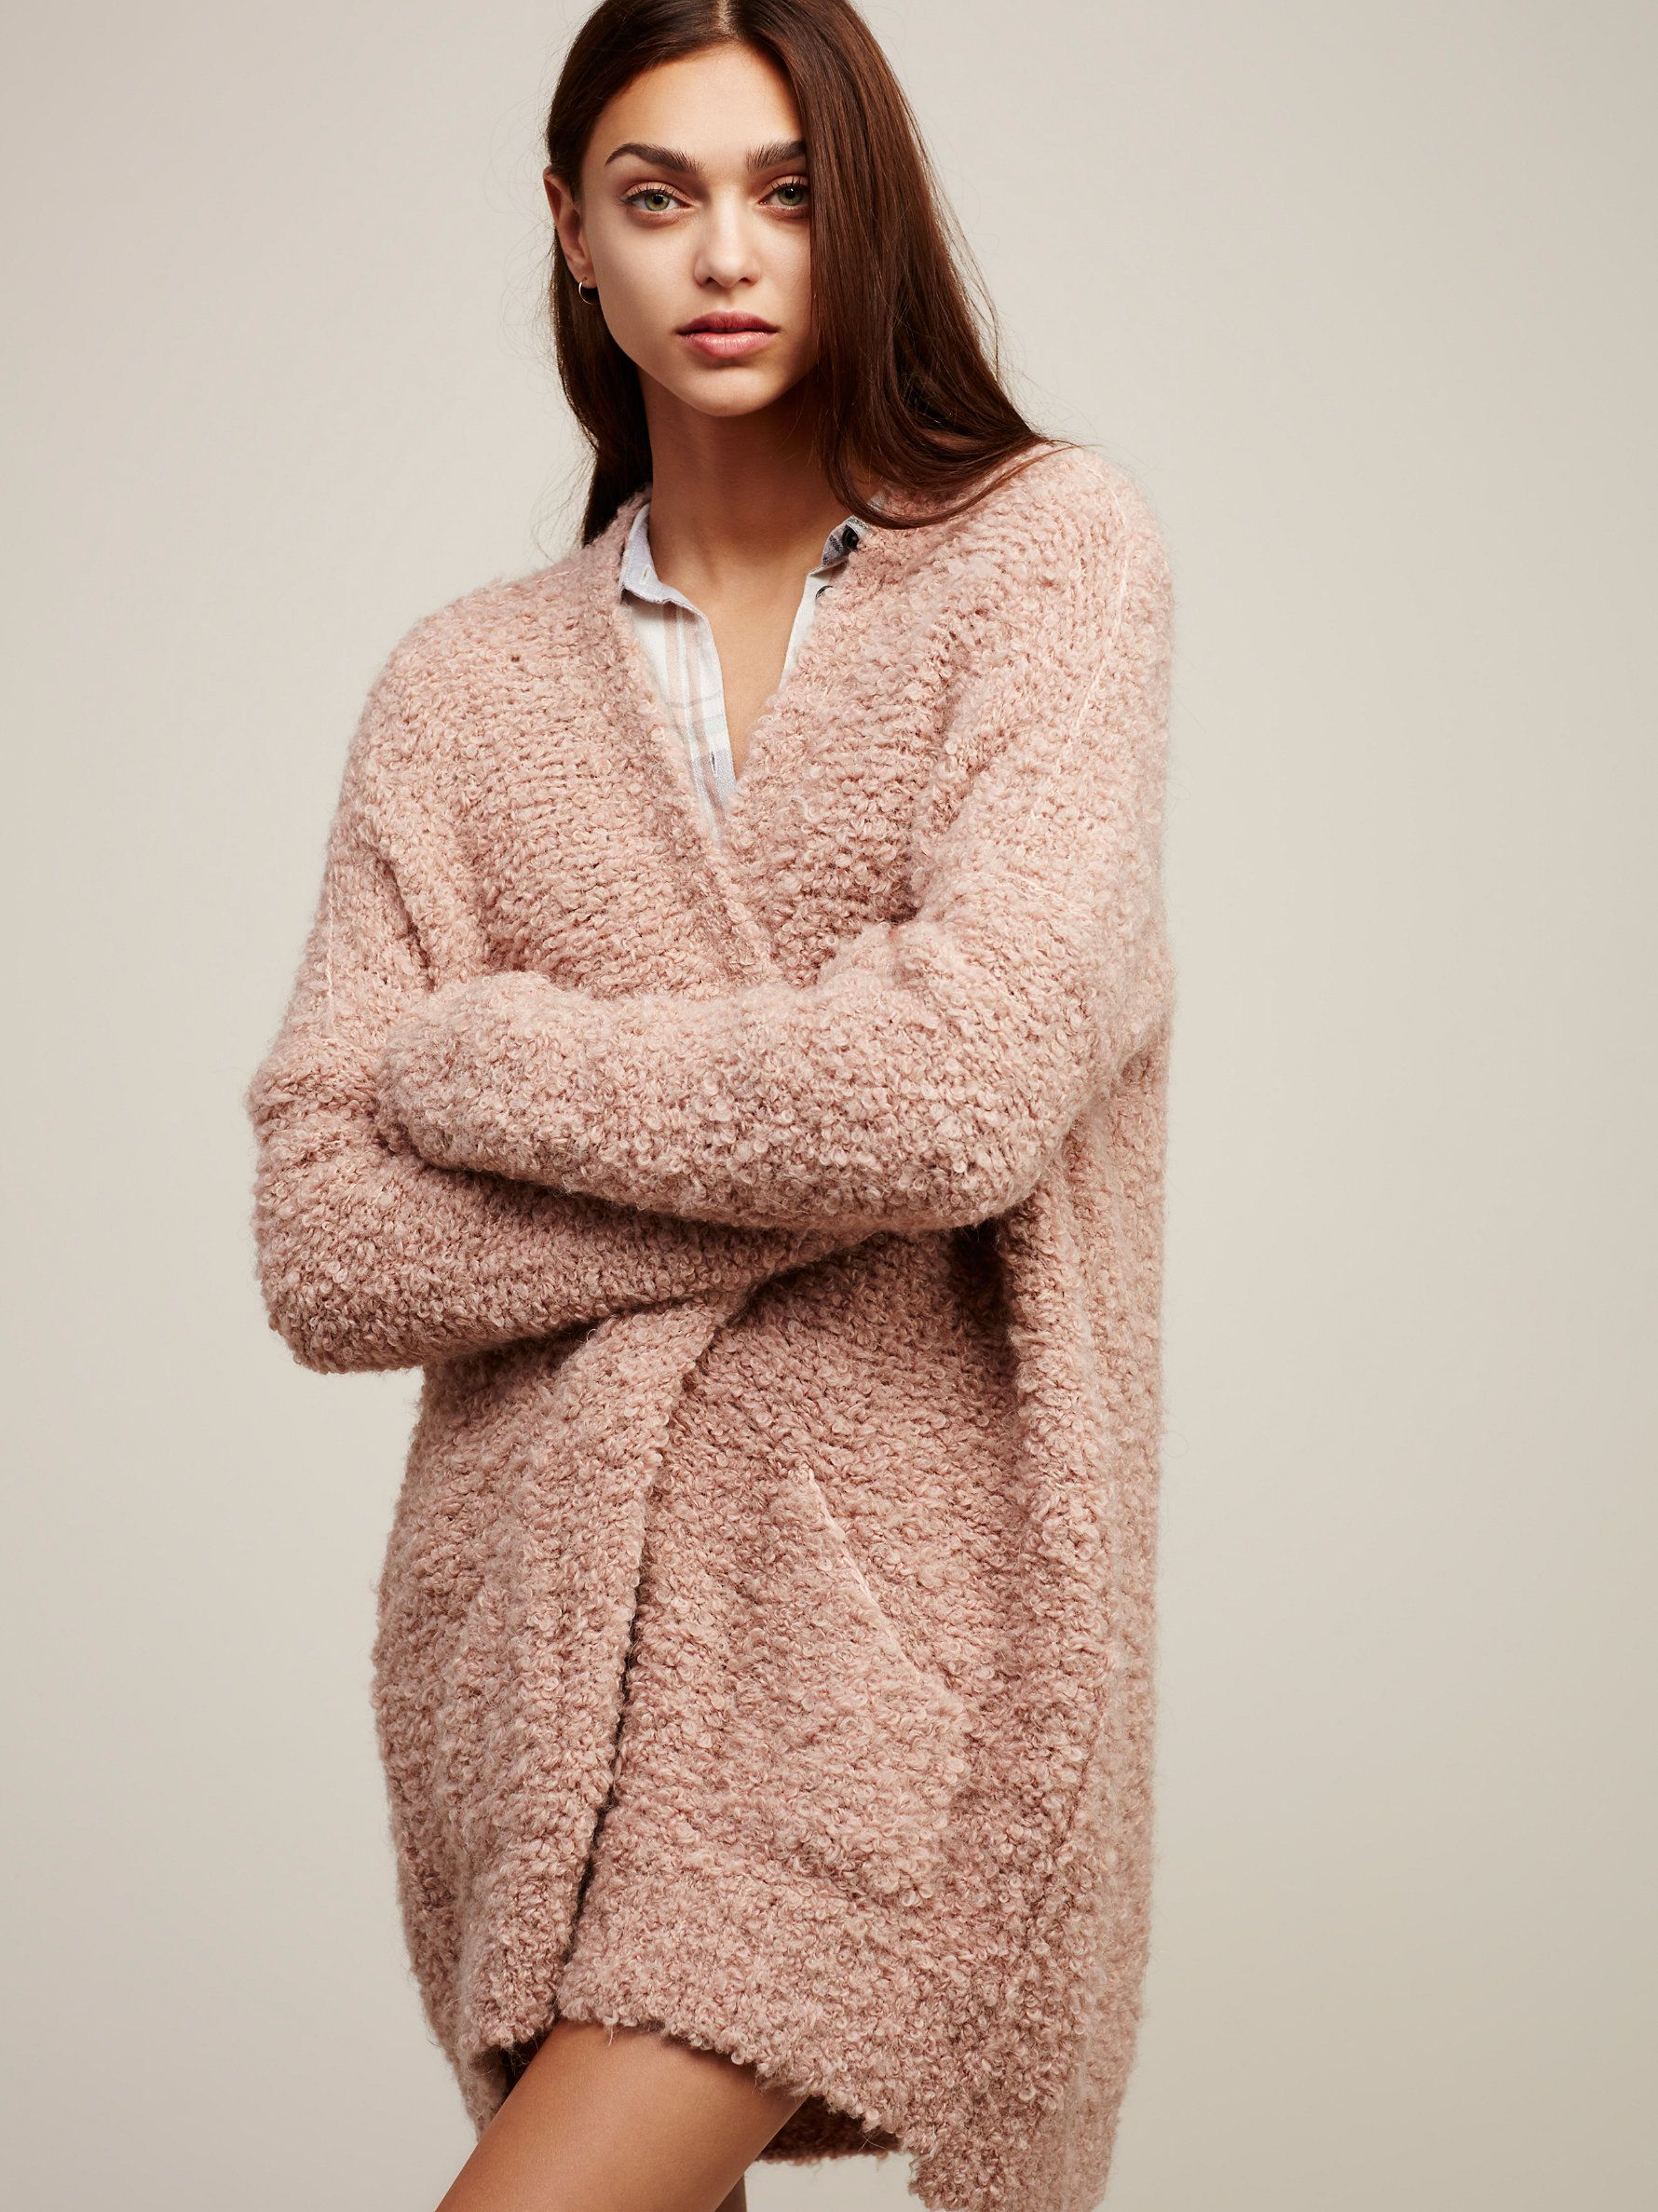 Free People Boucle Slouch Cardi | Pocket detail and Clothes